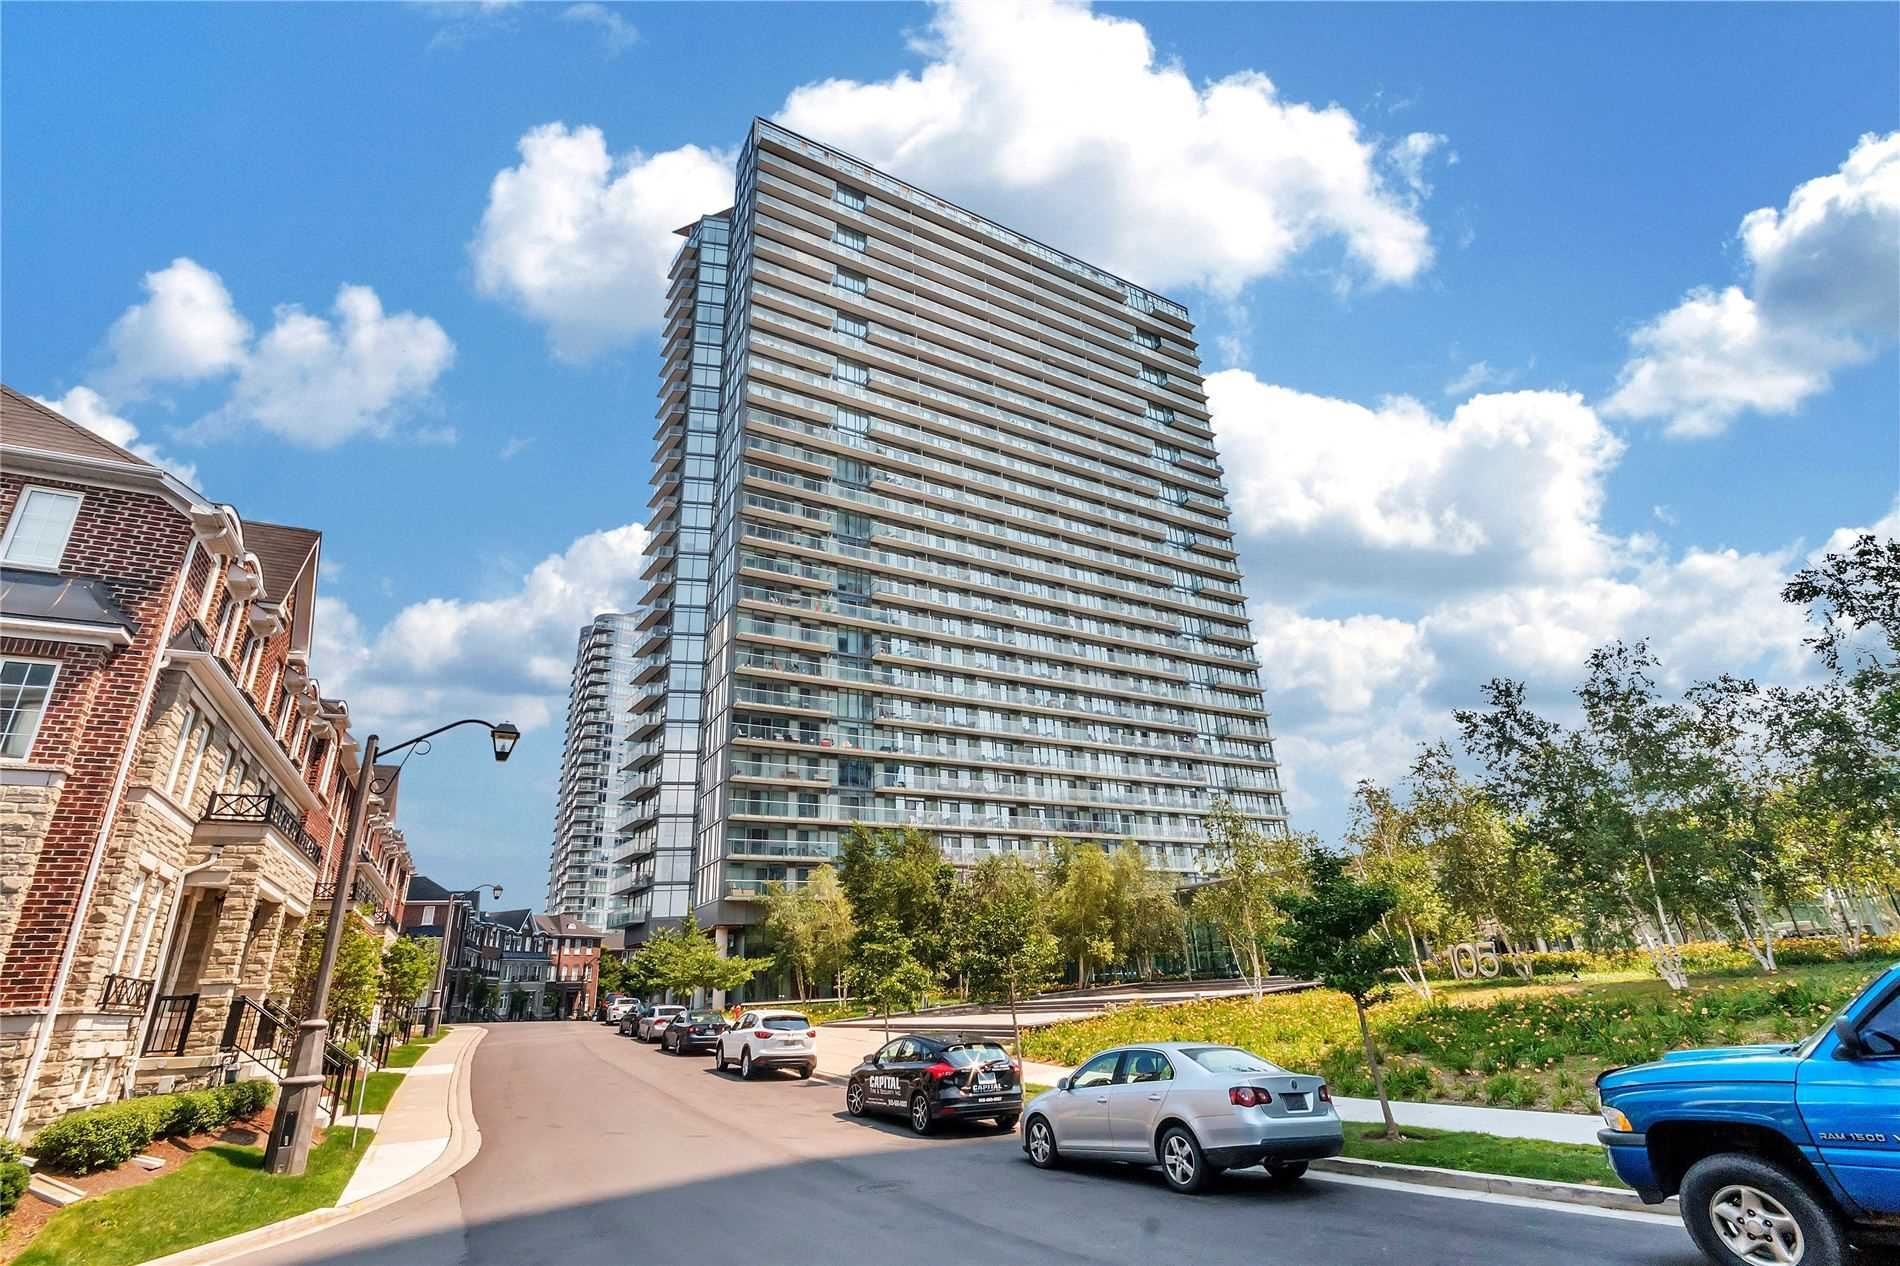 103 The Queensway Ave #616, Toronto, ON M6S 5B3 - MLS#: W5406179